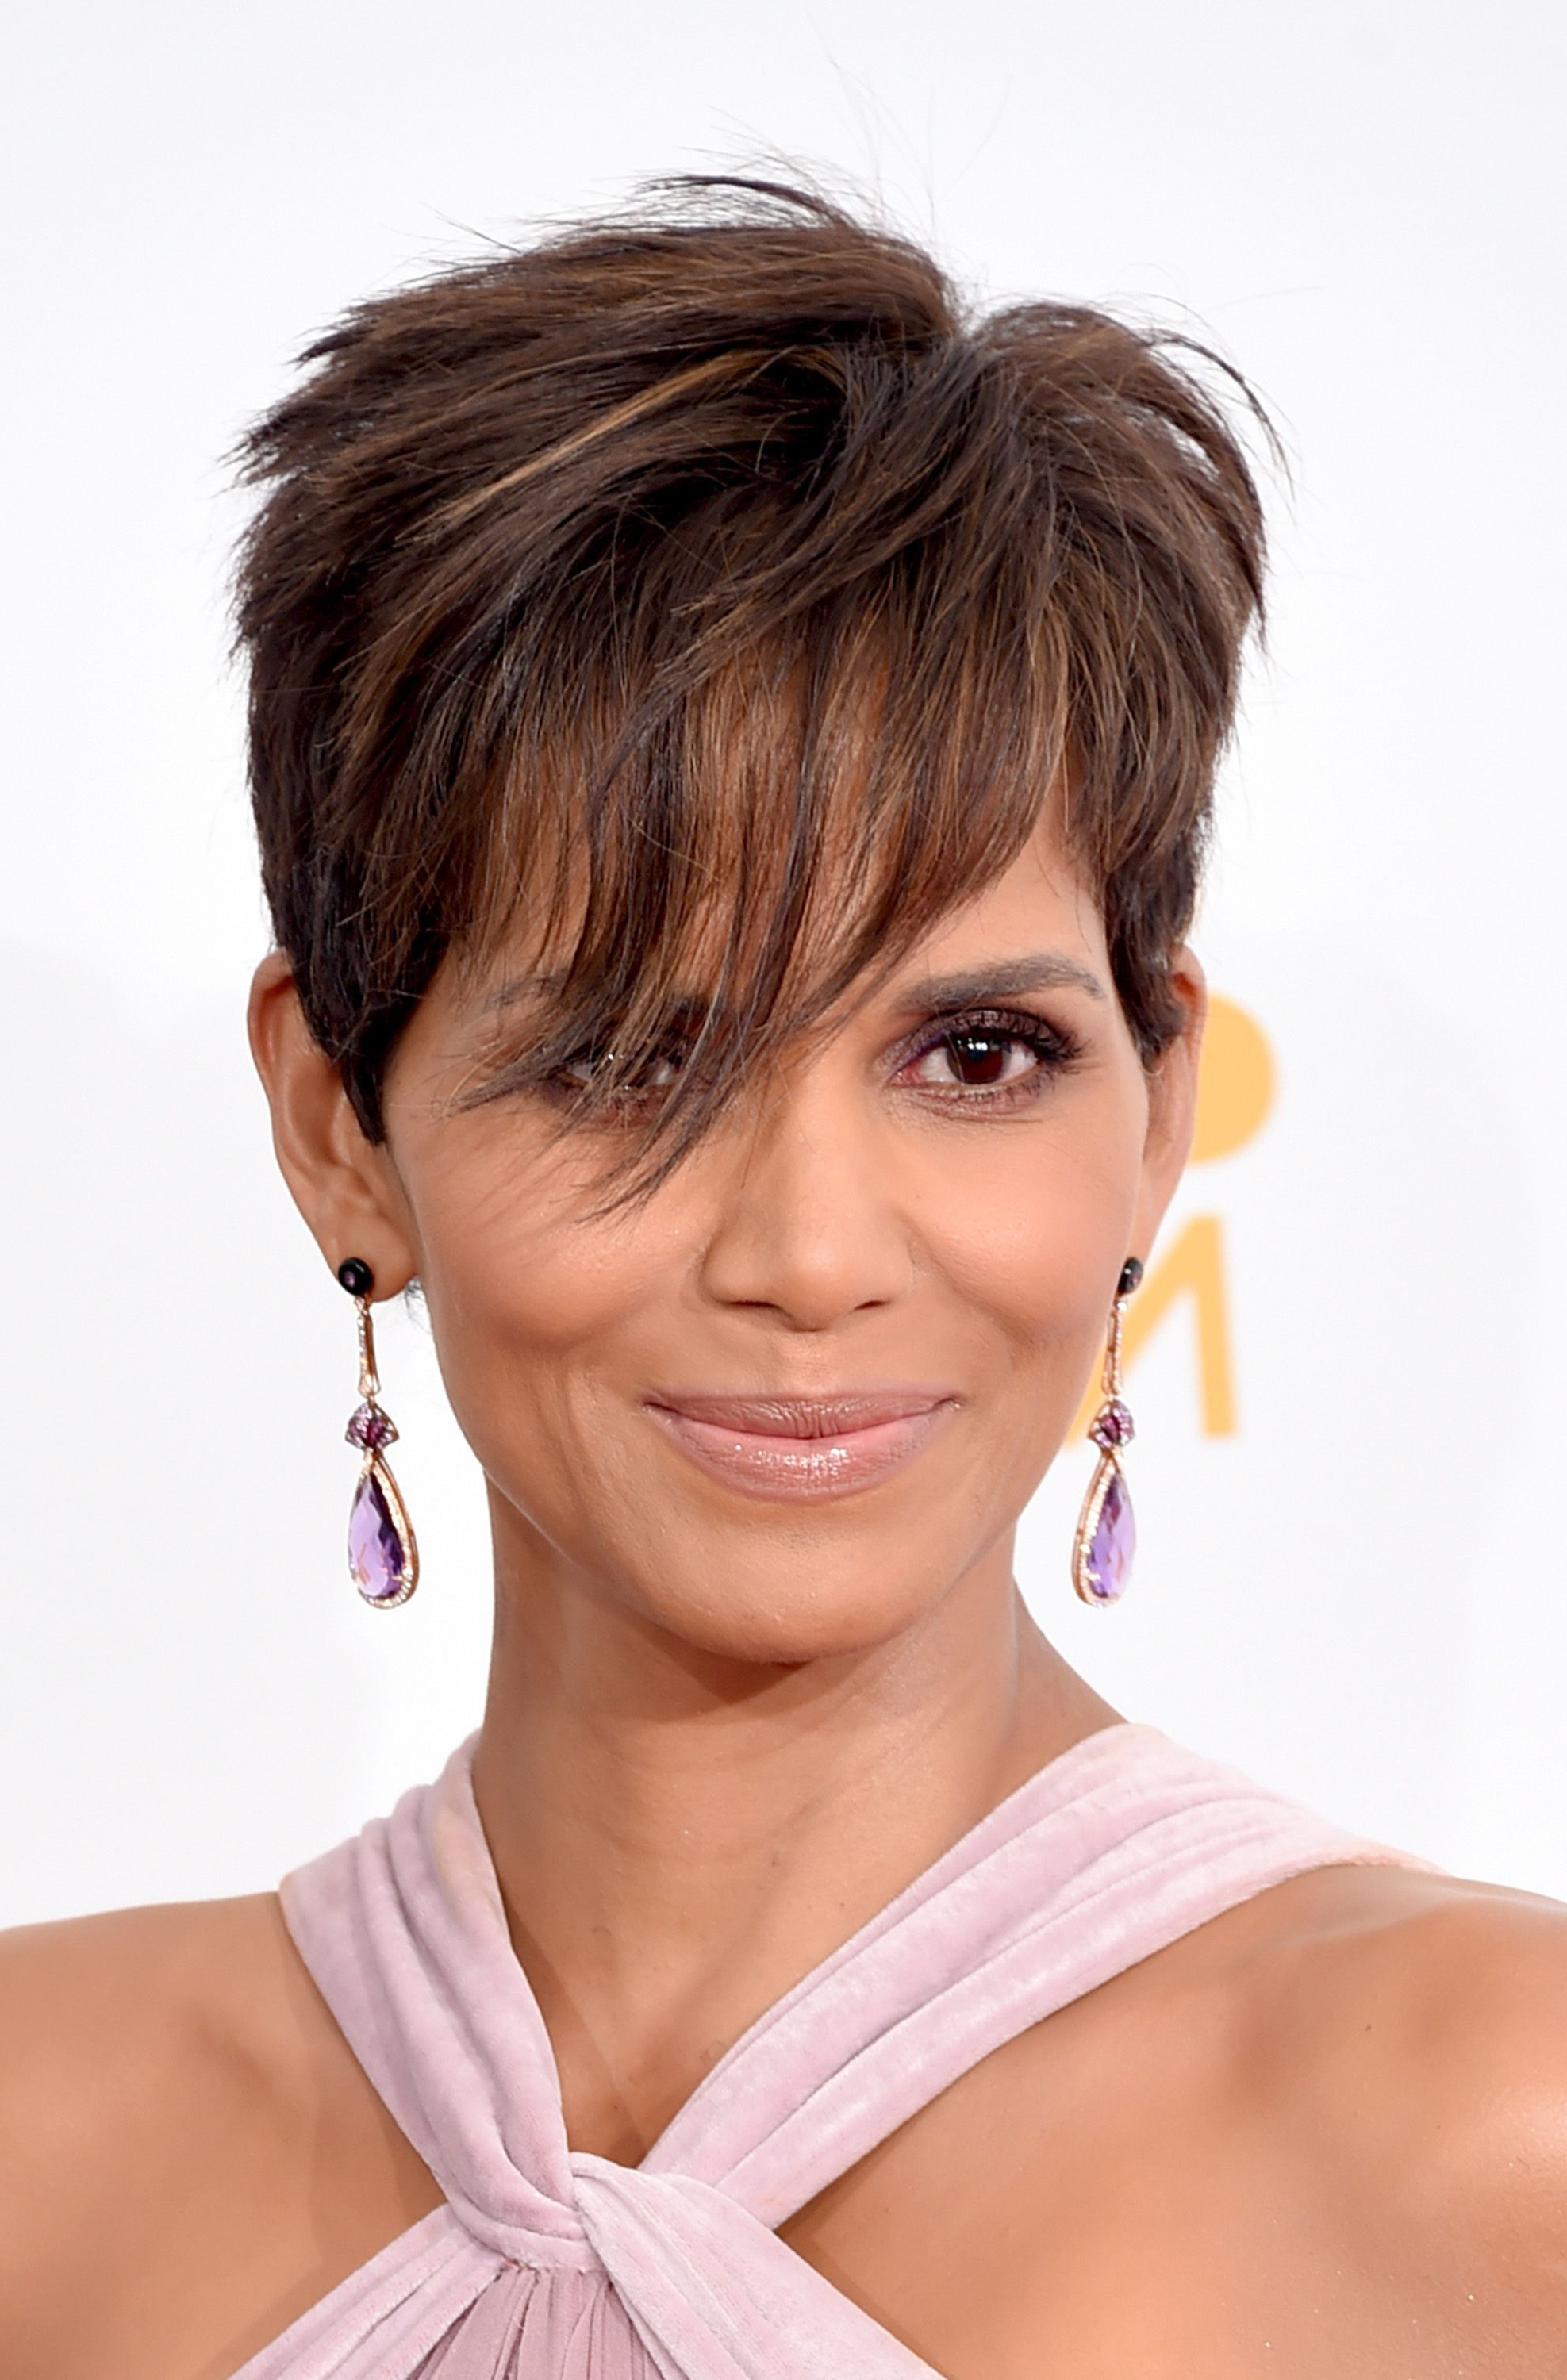 40 Best Short Pixie Cut Hairstyles 2018 – Cute Pixie Haircuts For Women In Feathered Back Swept Crop Hairstyles (View 4 of 20)